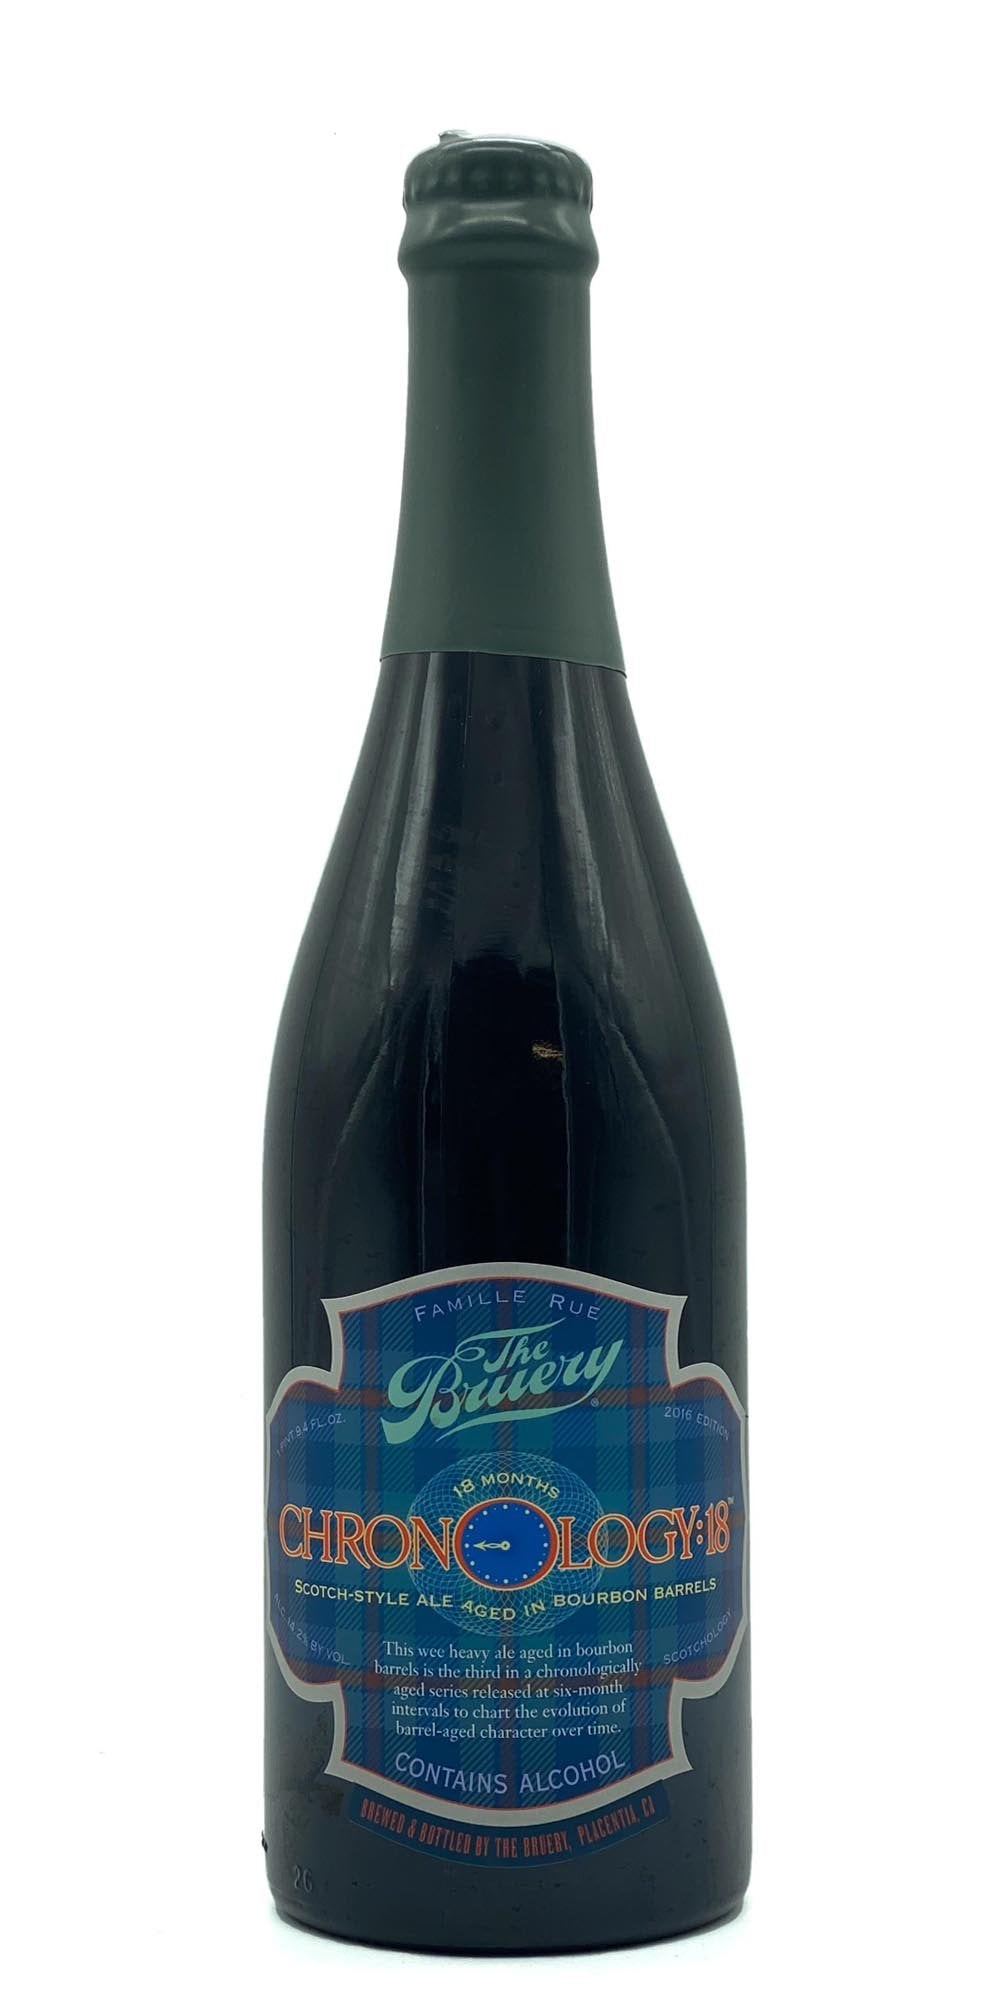 The Bruery - Chronology: 18 - Wee Heavy 2016